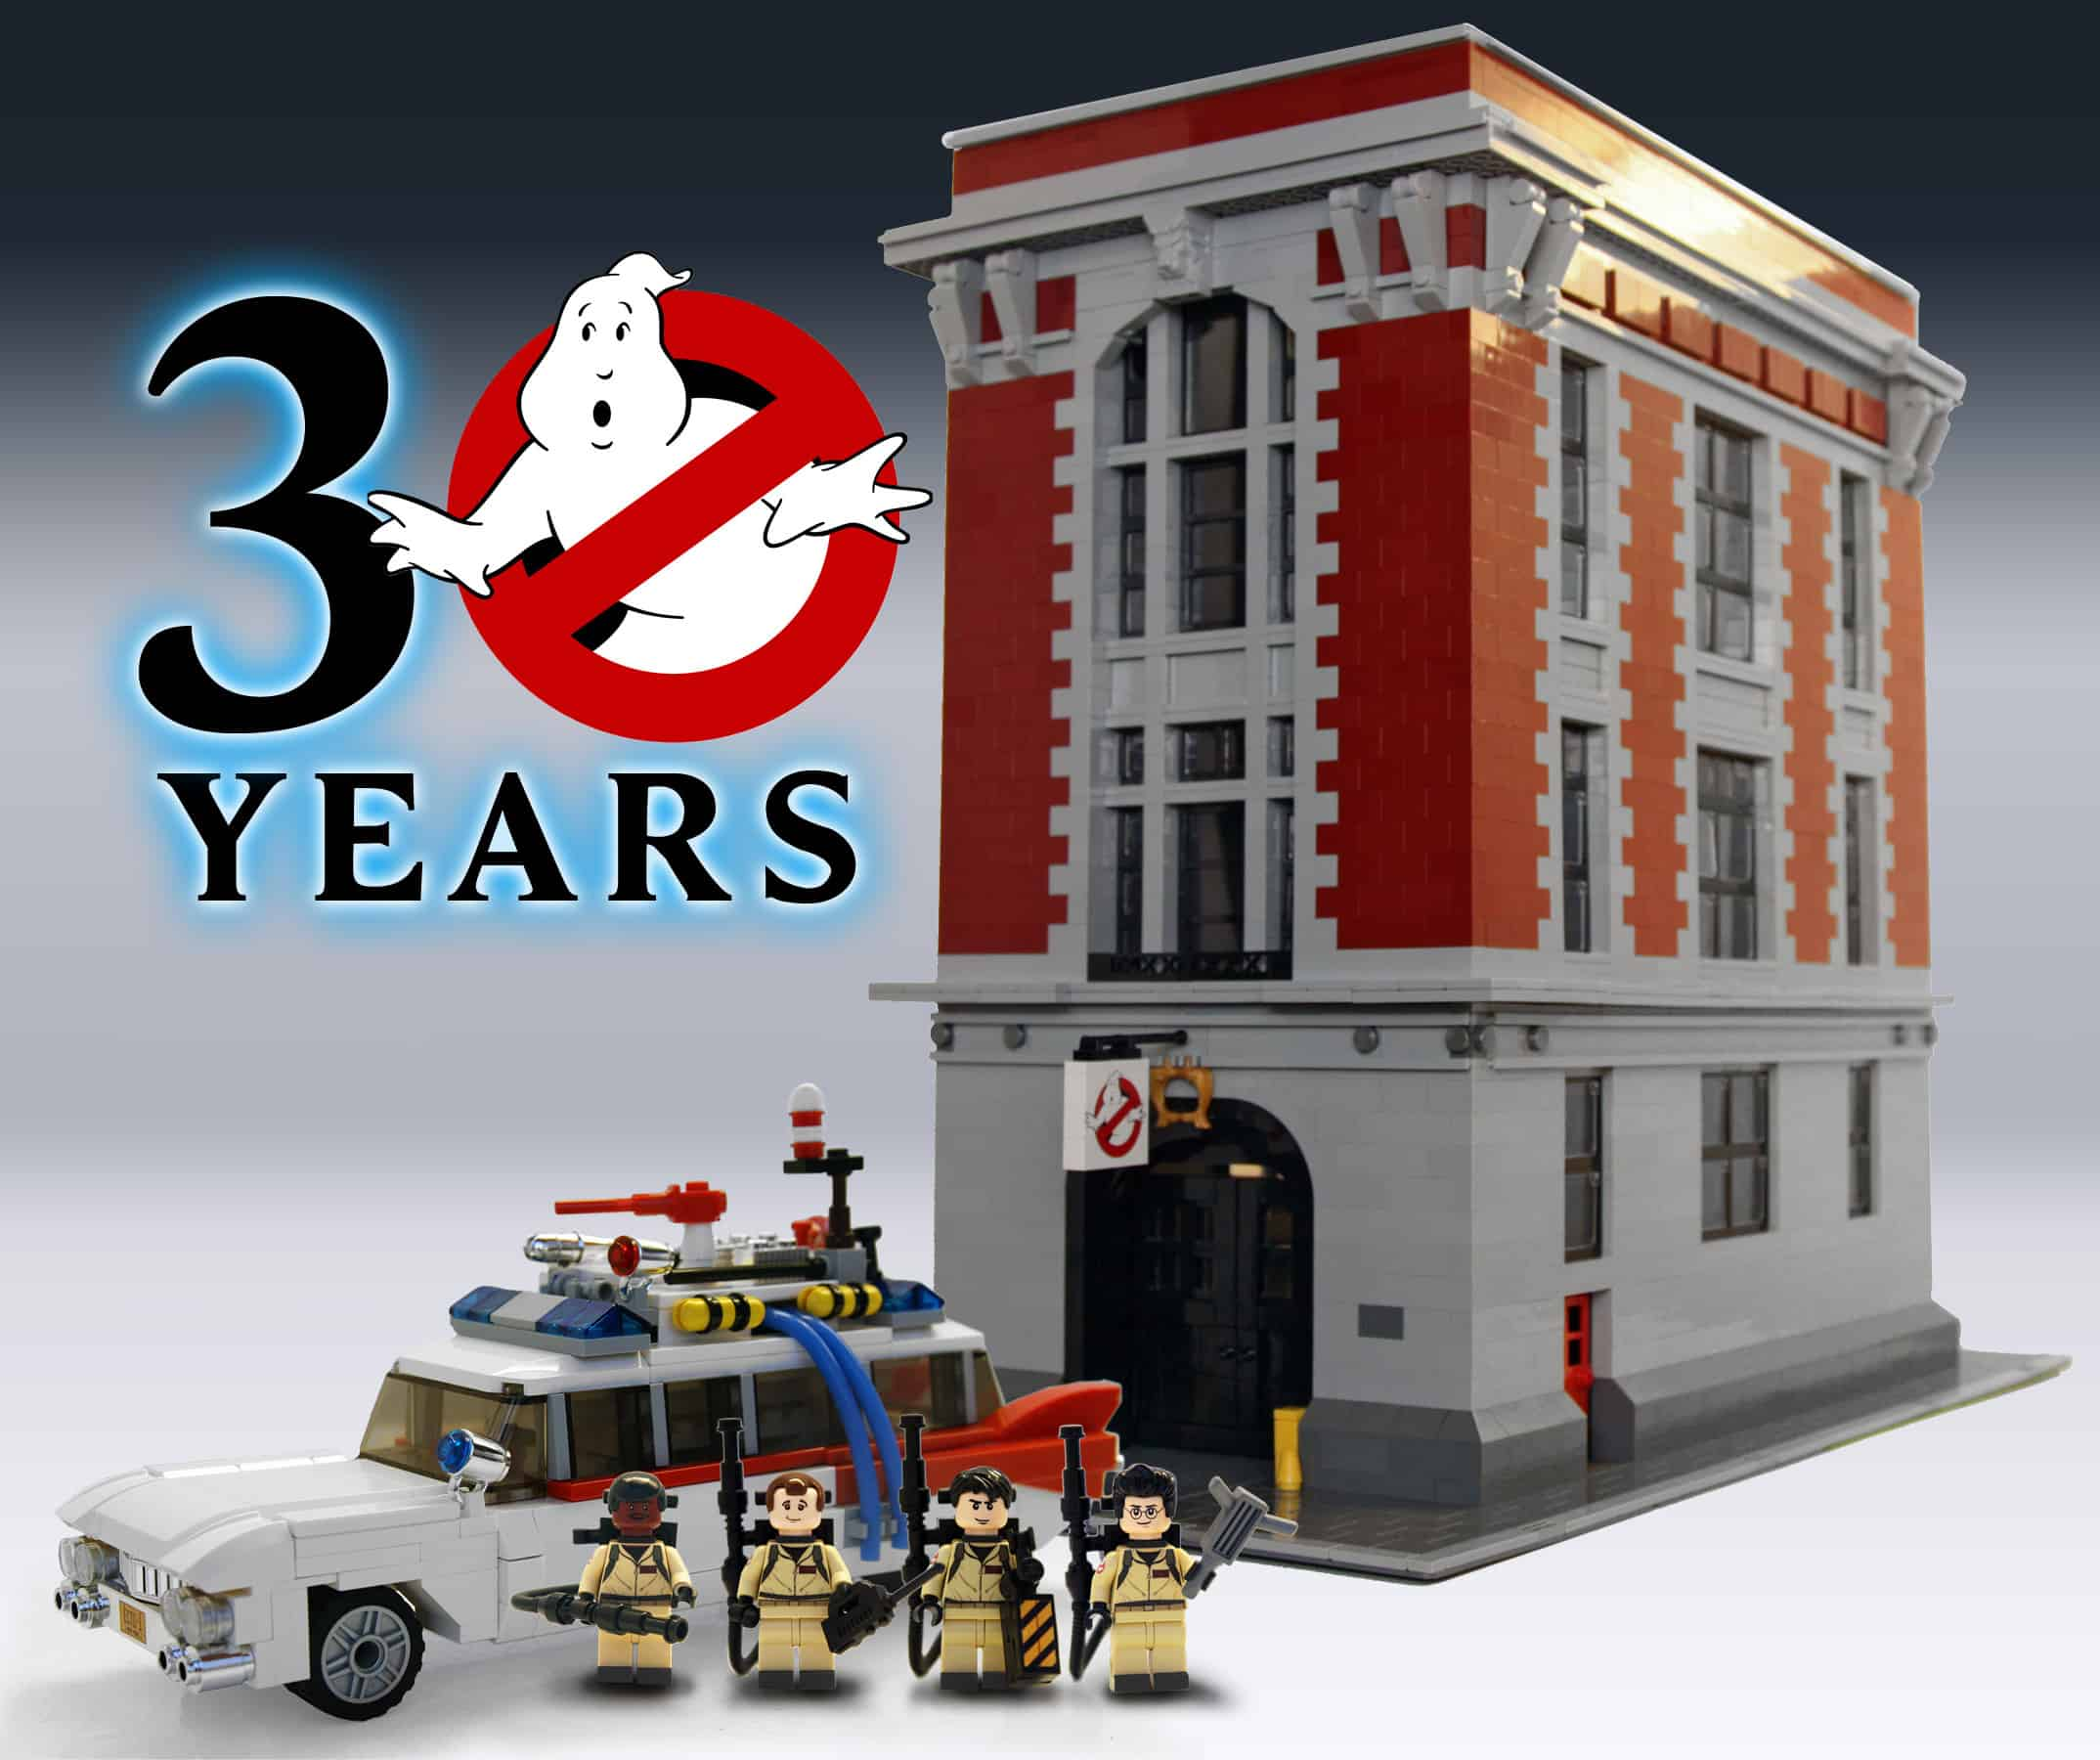 Lego Ghostbusters Ecto-1 30 Years Set Cool Gift Idea